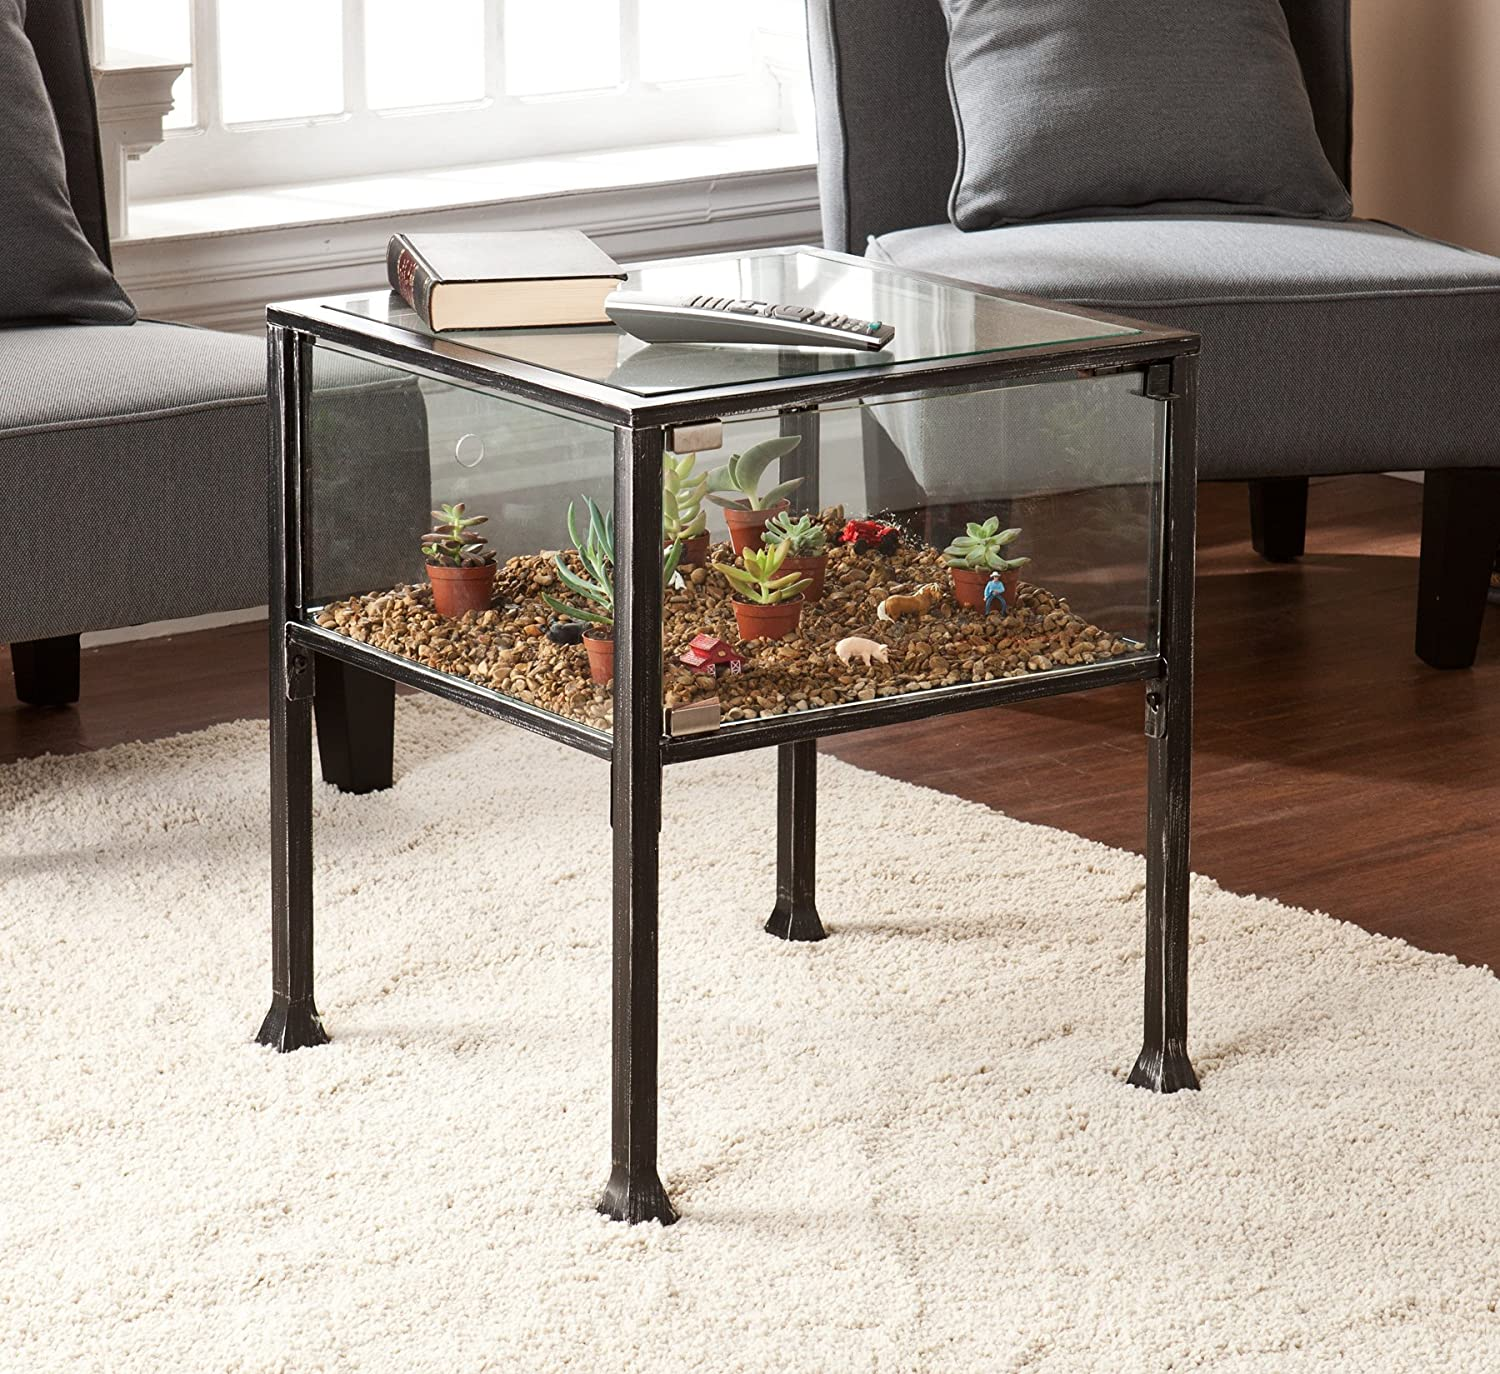 Amazon Terrarium Display End Table with Silver Distressing in